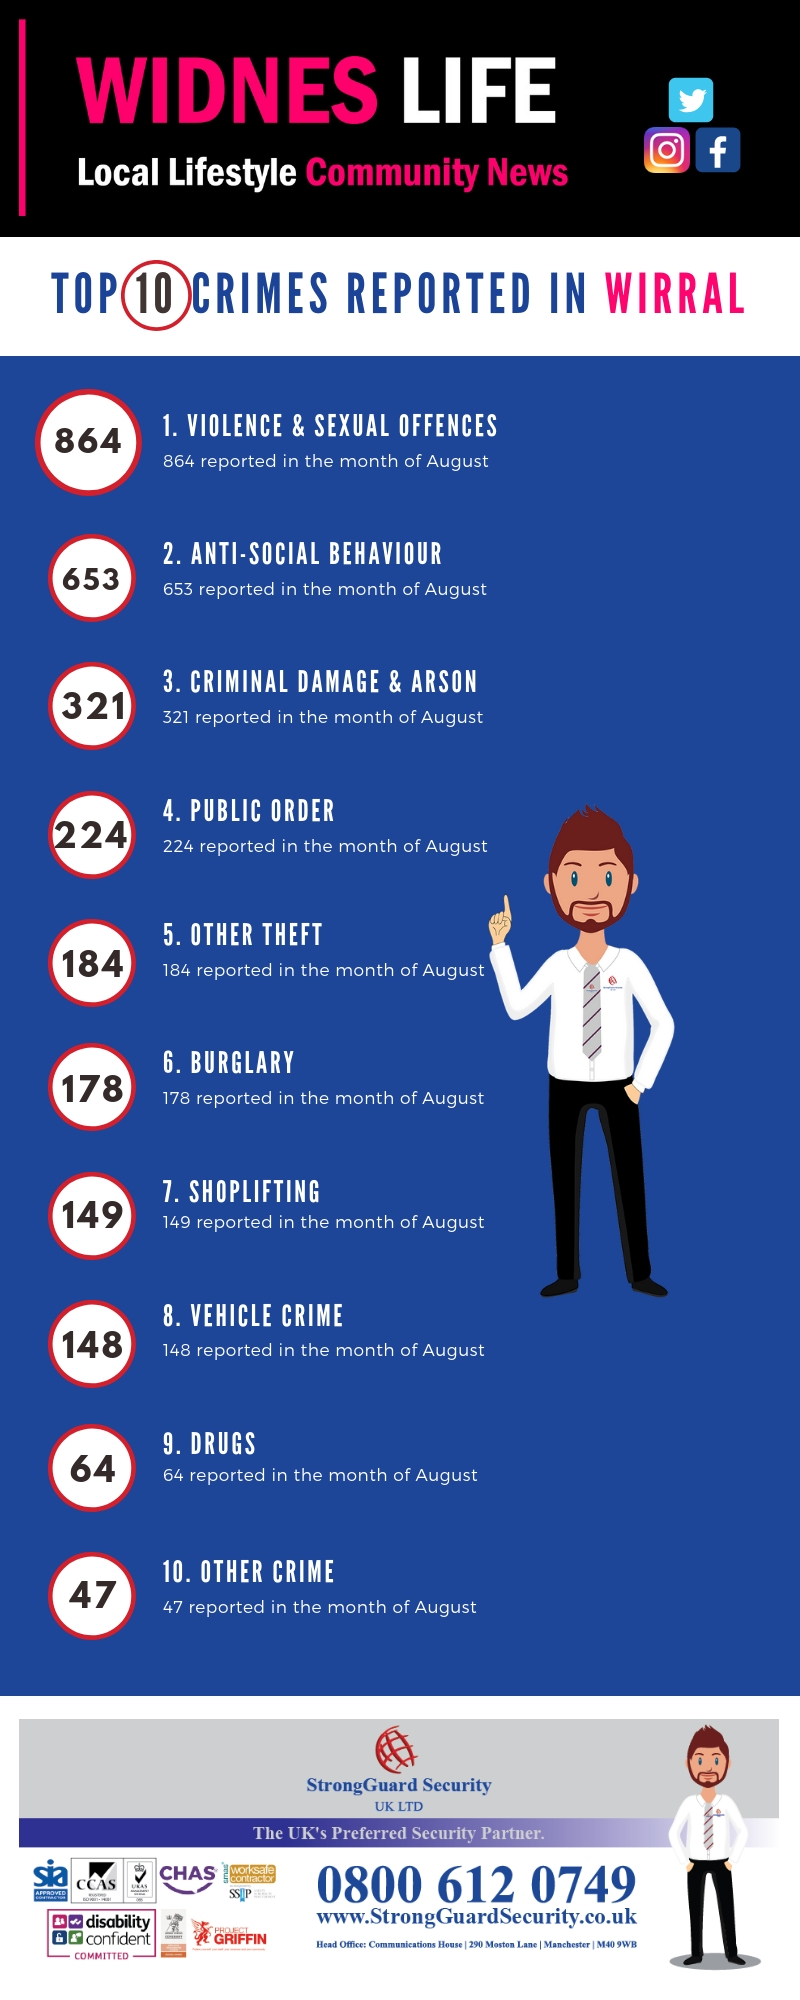 10 MOST REPORTED CRIMES ON THE WIRRAL - AUGUST 2018